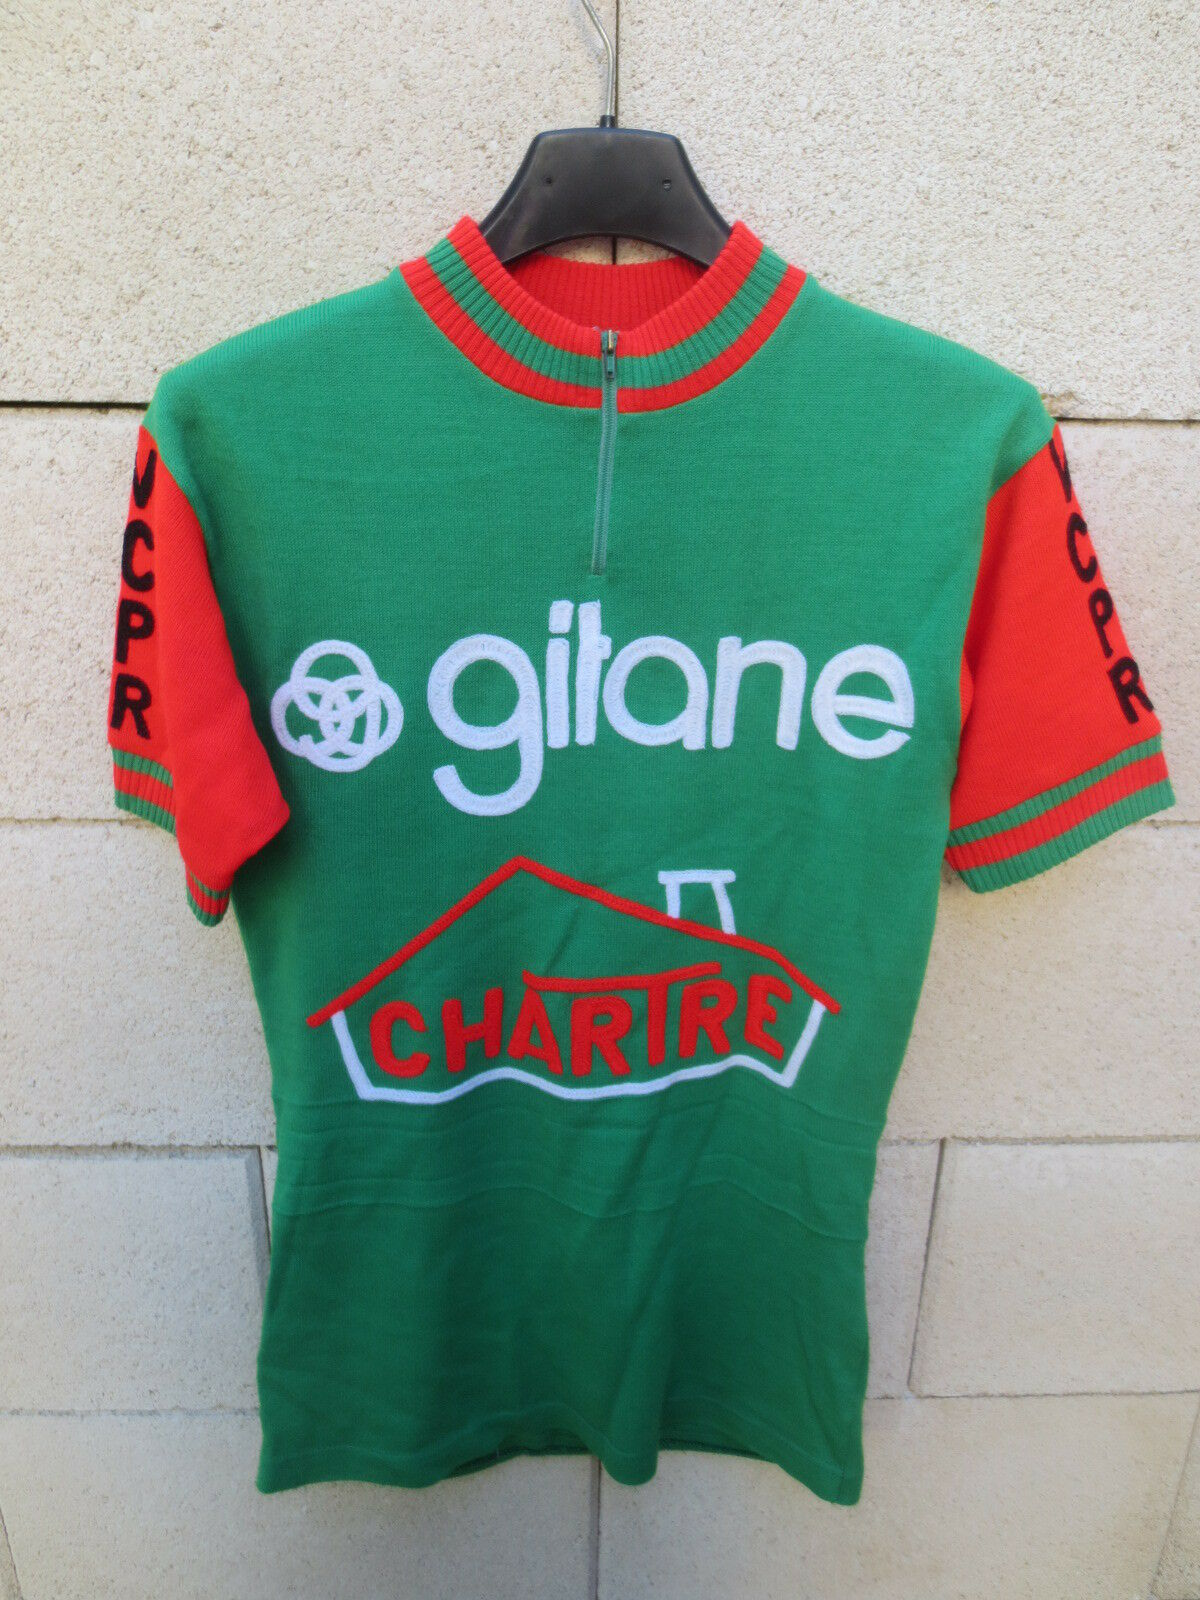 VINTAGE Maillot cycliste GITANE CHARTRE ROANNE cycling shirt jersey maglia 70's